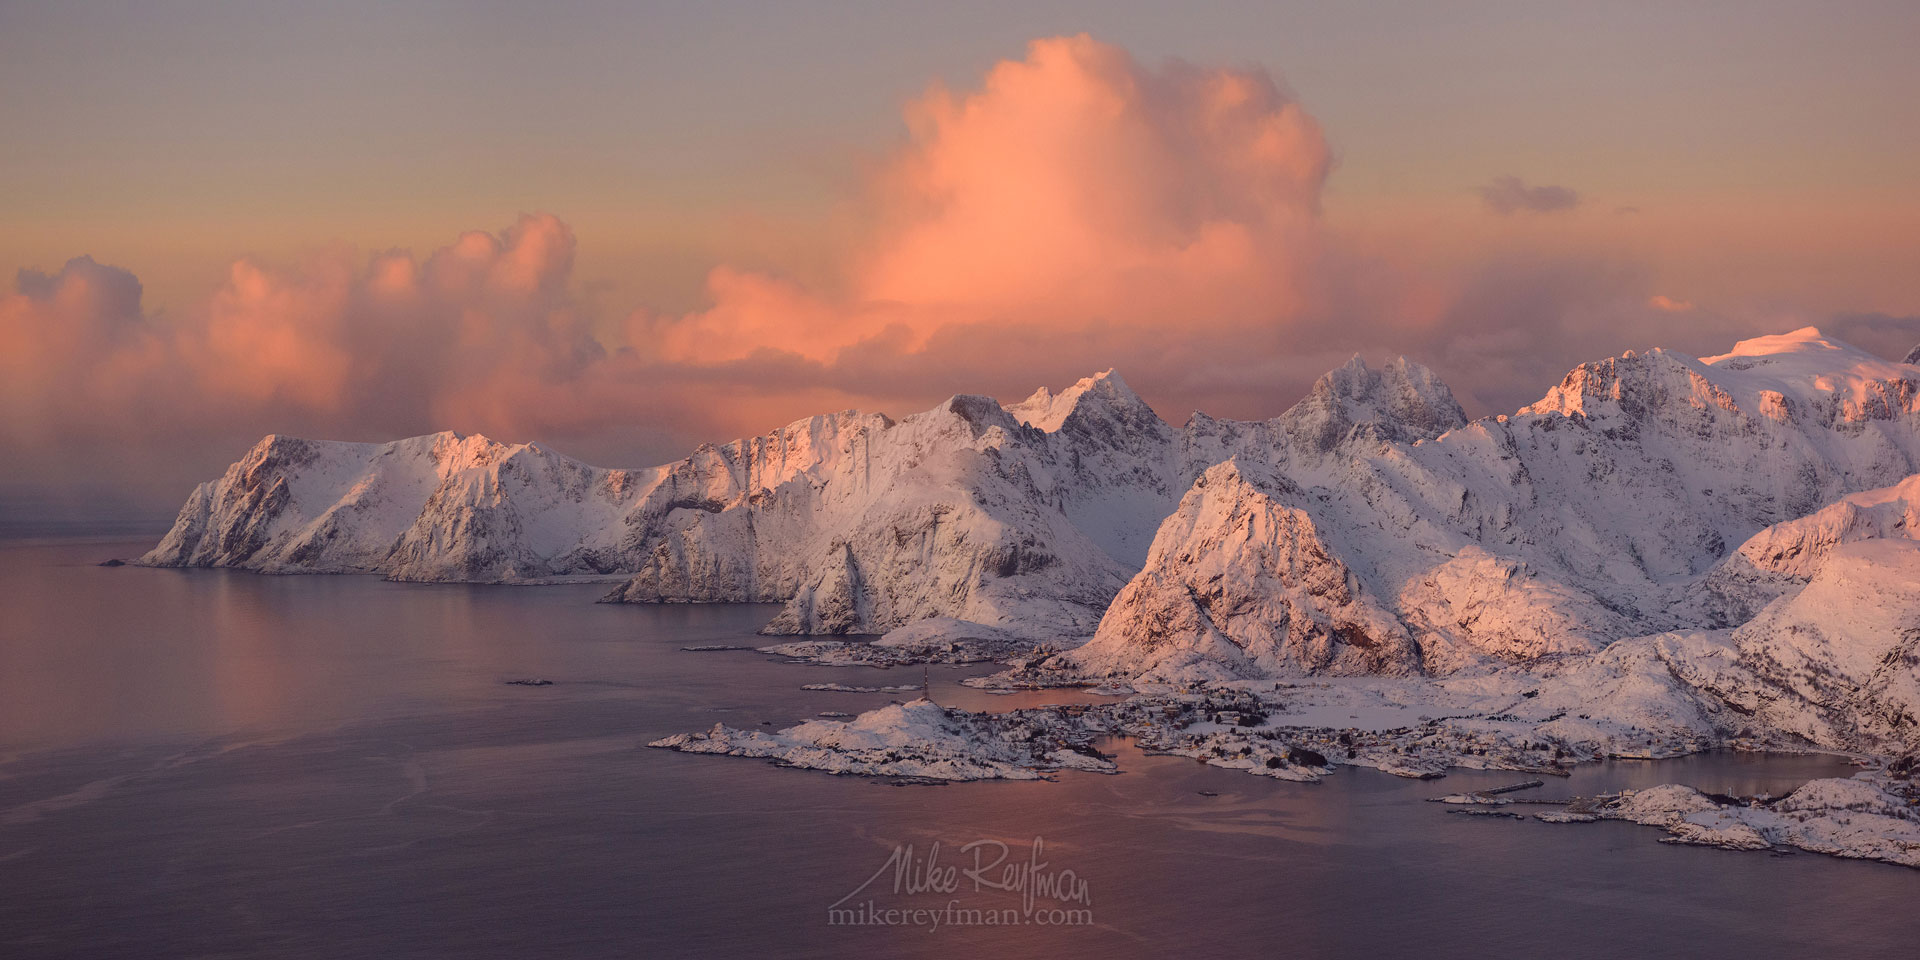 Aerial panoramic view of Lofoten archipelago and fishing village of Reine at sunrise. Moskenes, Lofoten archipelago, Norway. LF-MRD1E1273-71_Pano-2x1 - Lofoten Archipelago in Winter, Arctic Norway - Mike Reyfman Photography